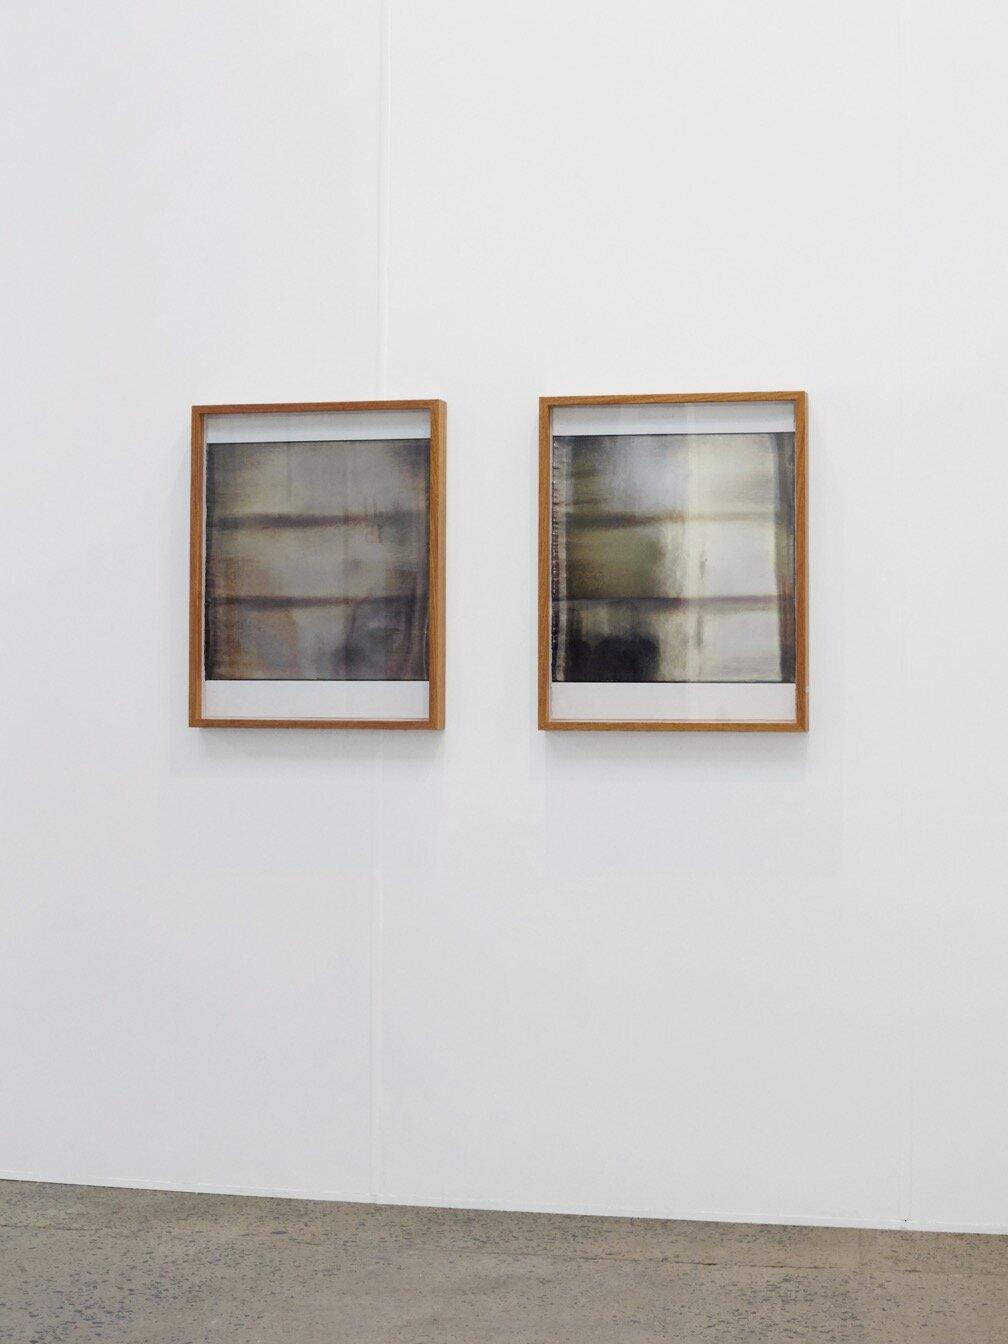 Coen Young,  Study of a Mirror 1 and 2,  marble dust and silver nitrate on paper   2019